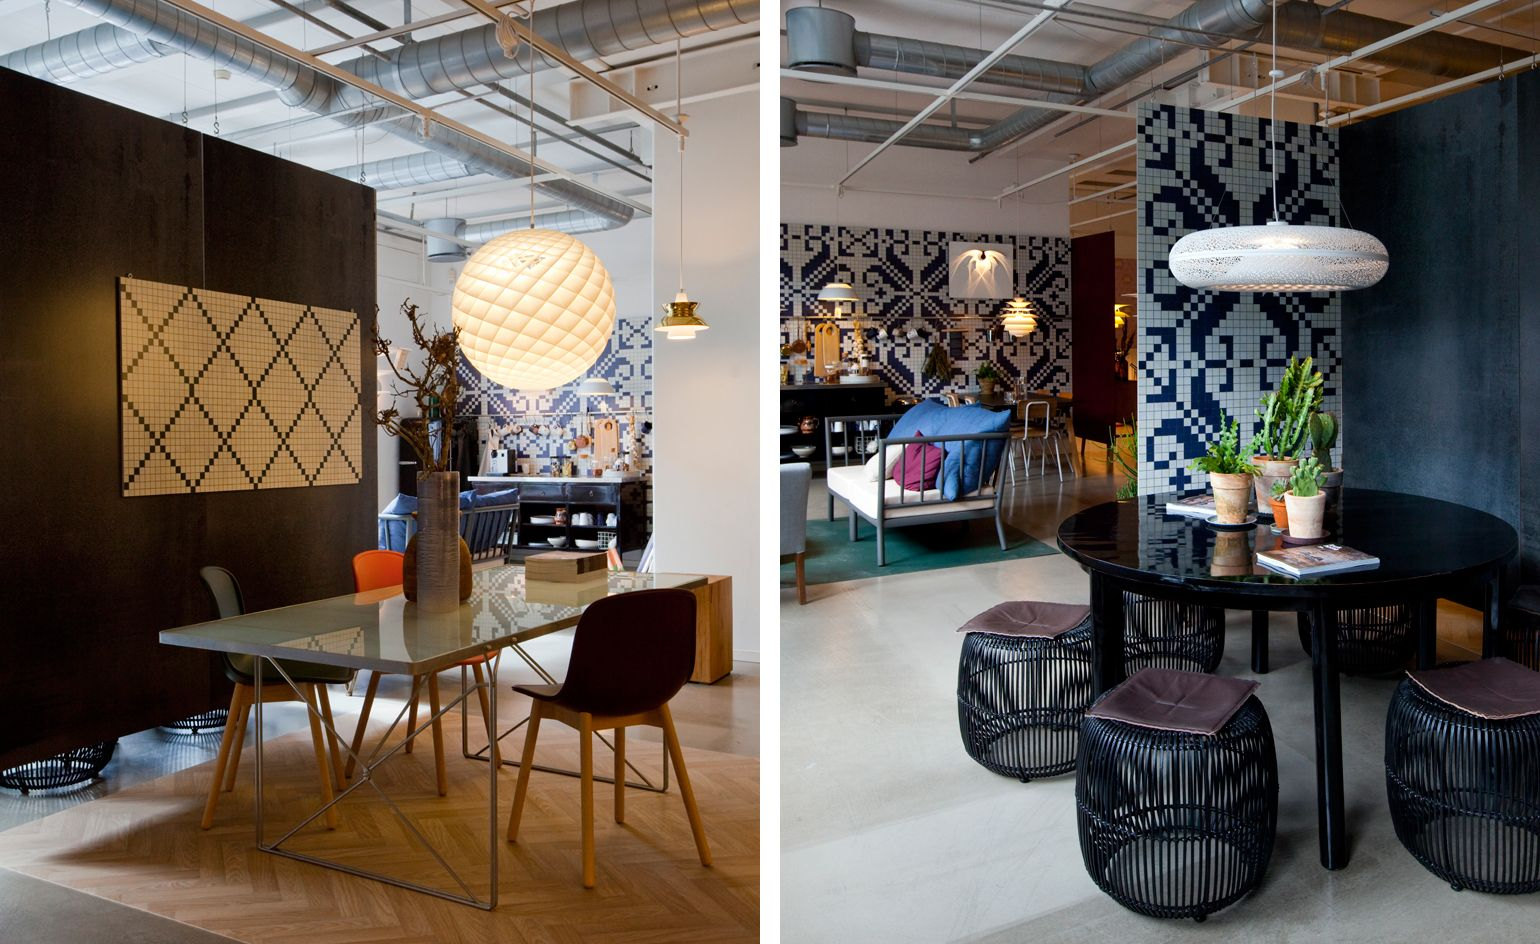 Louis poulsen has opened  sq  showroom over two floors of its airy six storey hq in the heart copenhagen created by house design team also light work opens rh pinterest